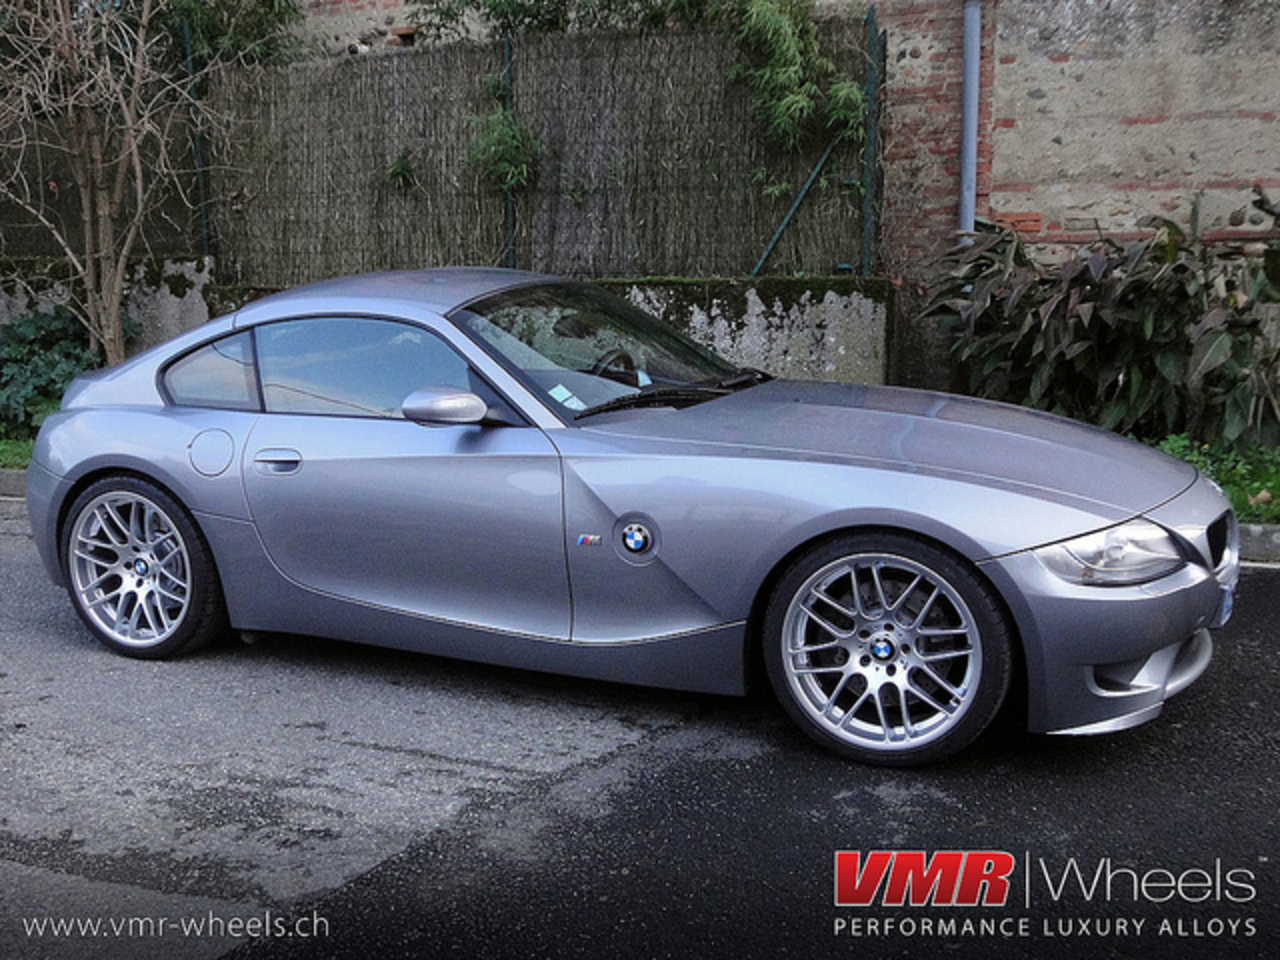 VMR Wheels VB3 Super Silver - BMW Z4 M Coupé | Flickr - Photo Sharing!